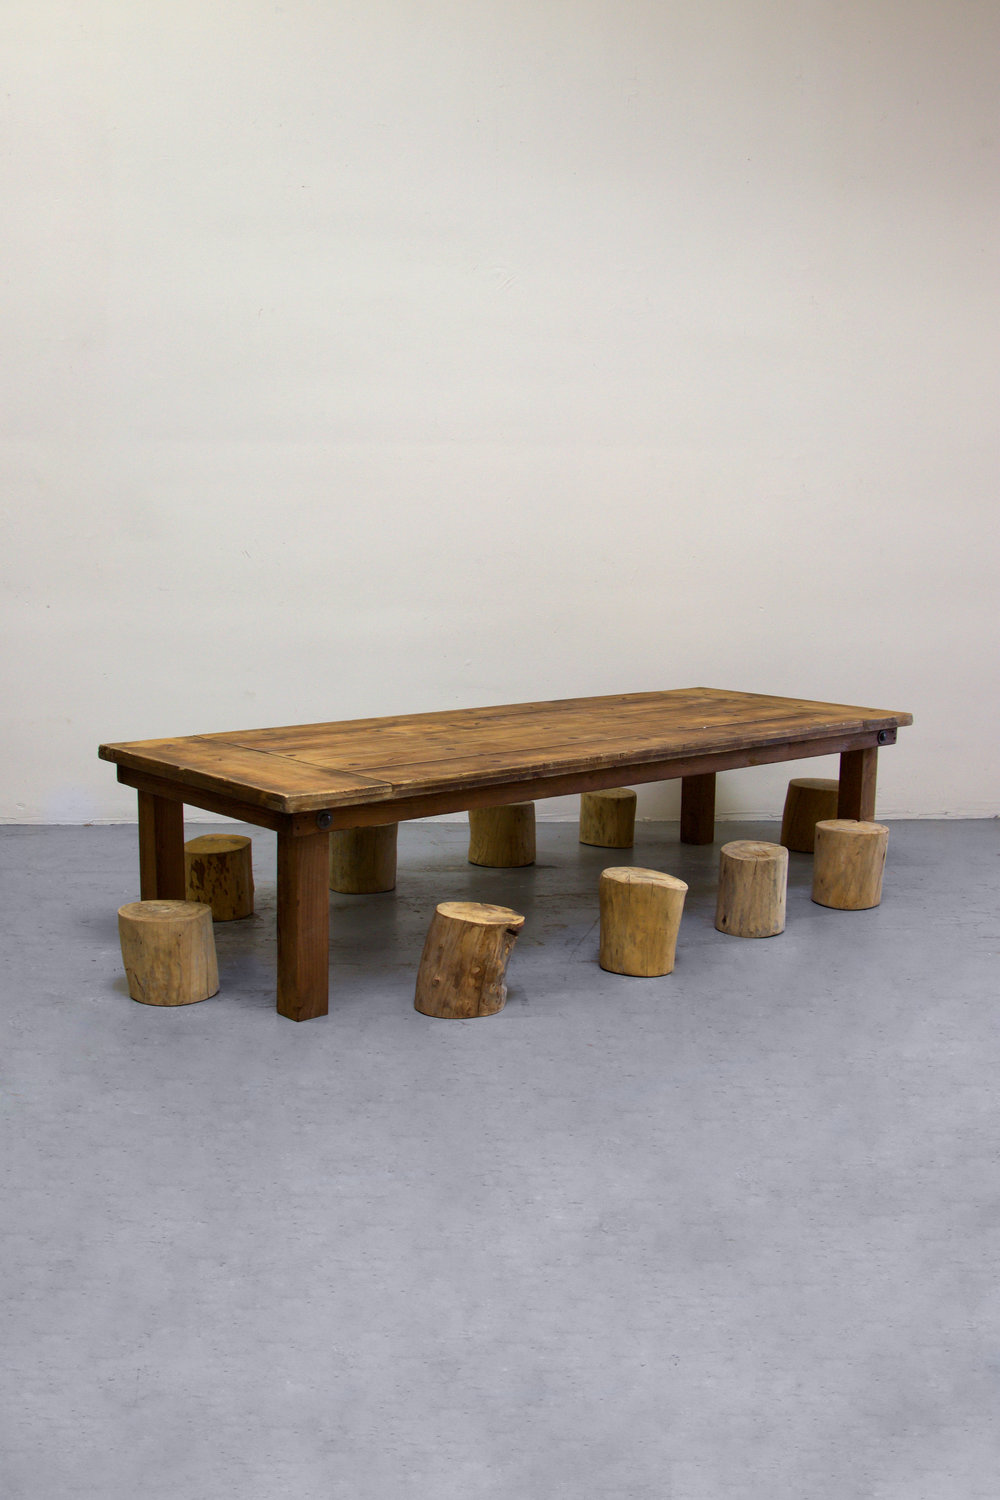 1 Kids Honey Brown Farm Table w/ 10 Tree Stumps